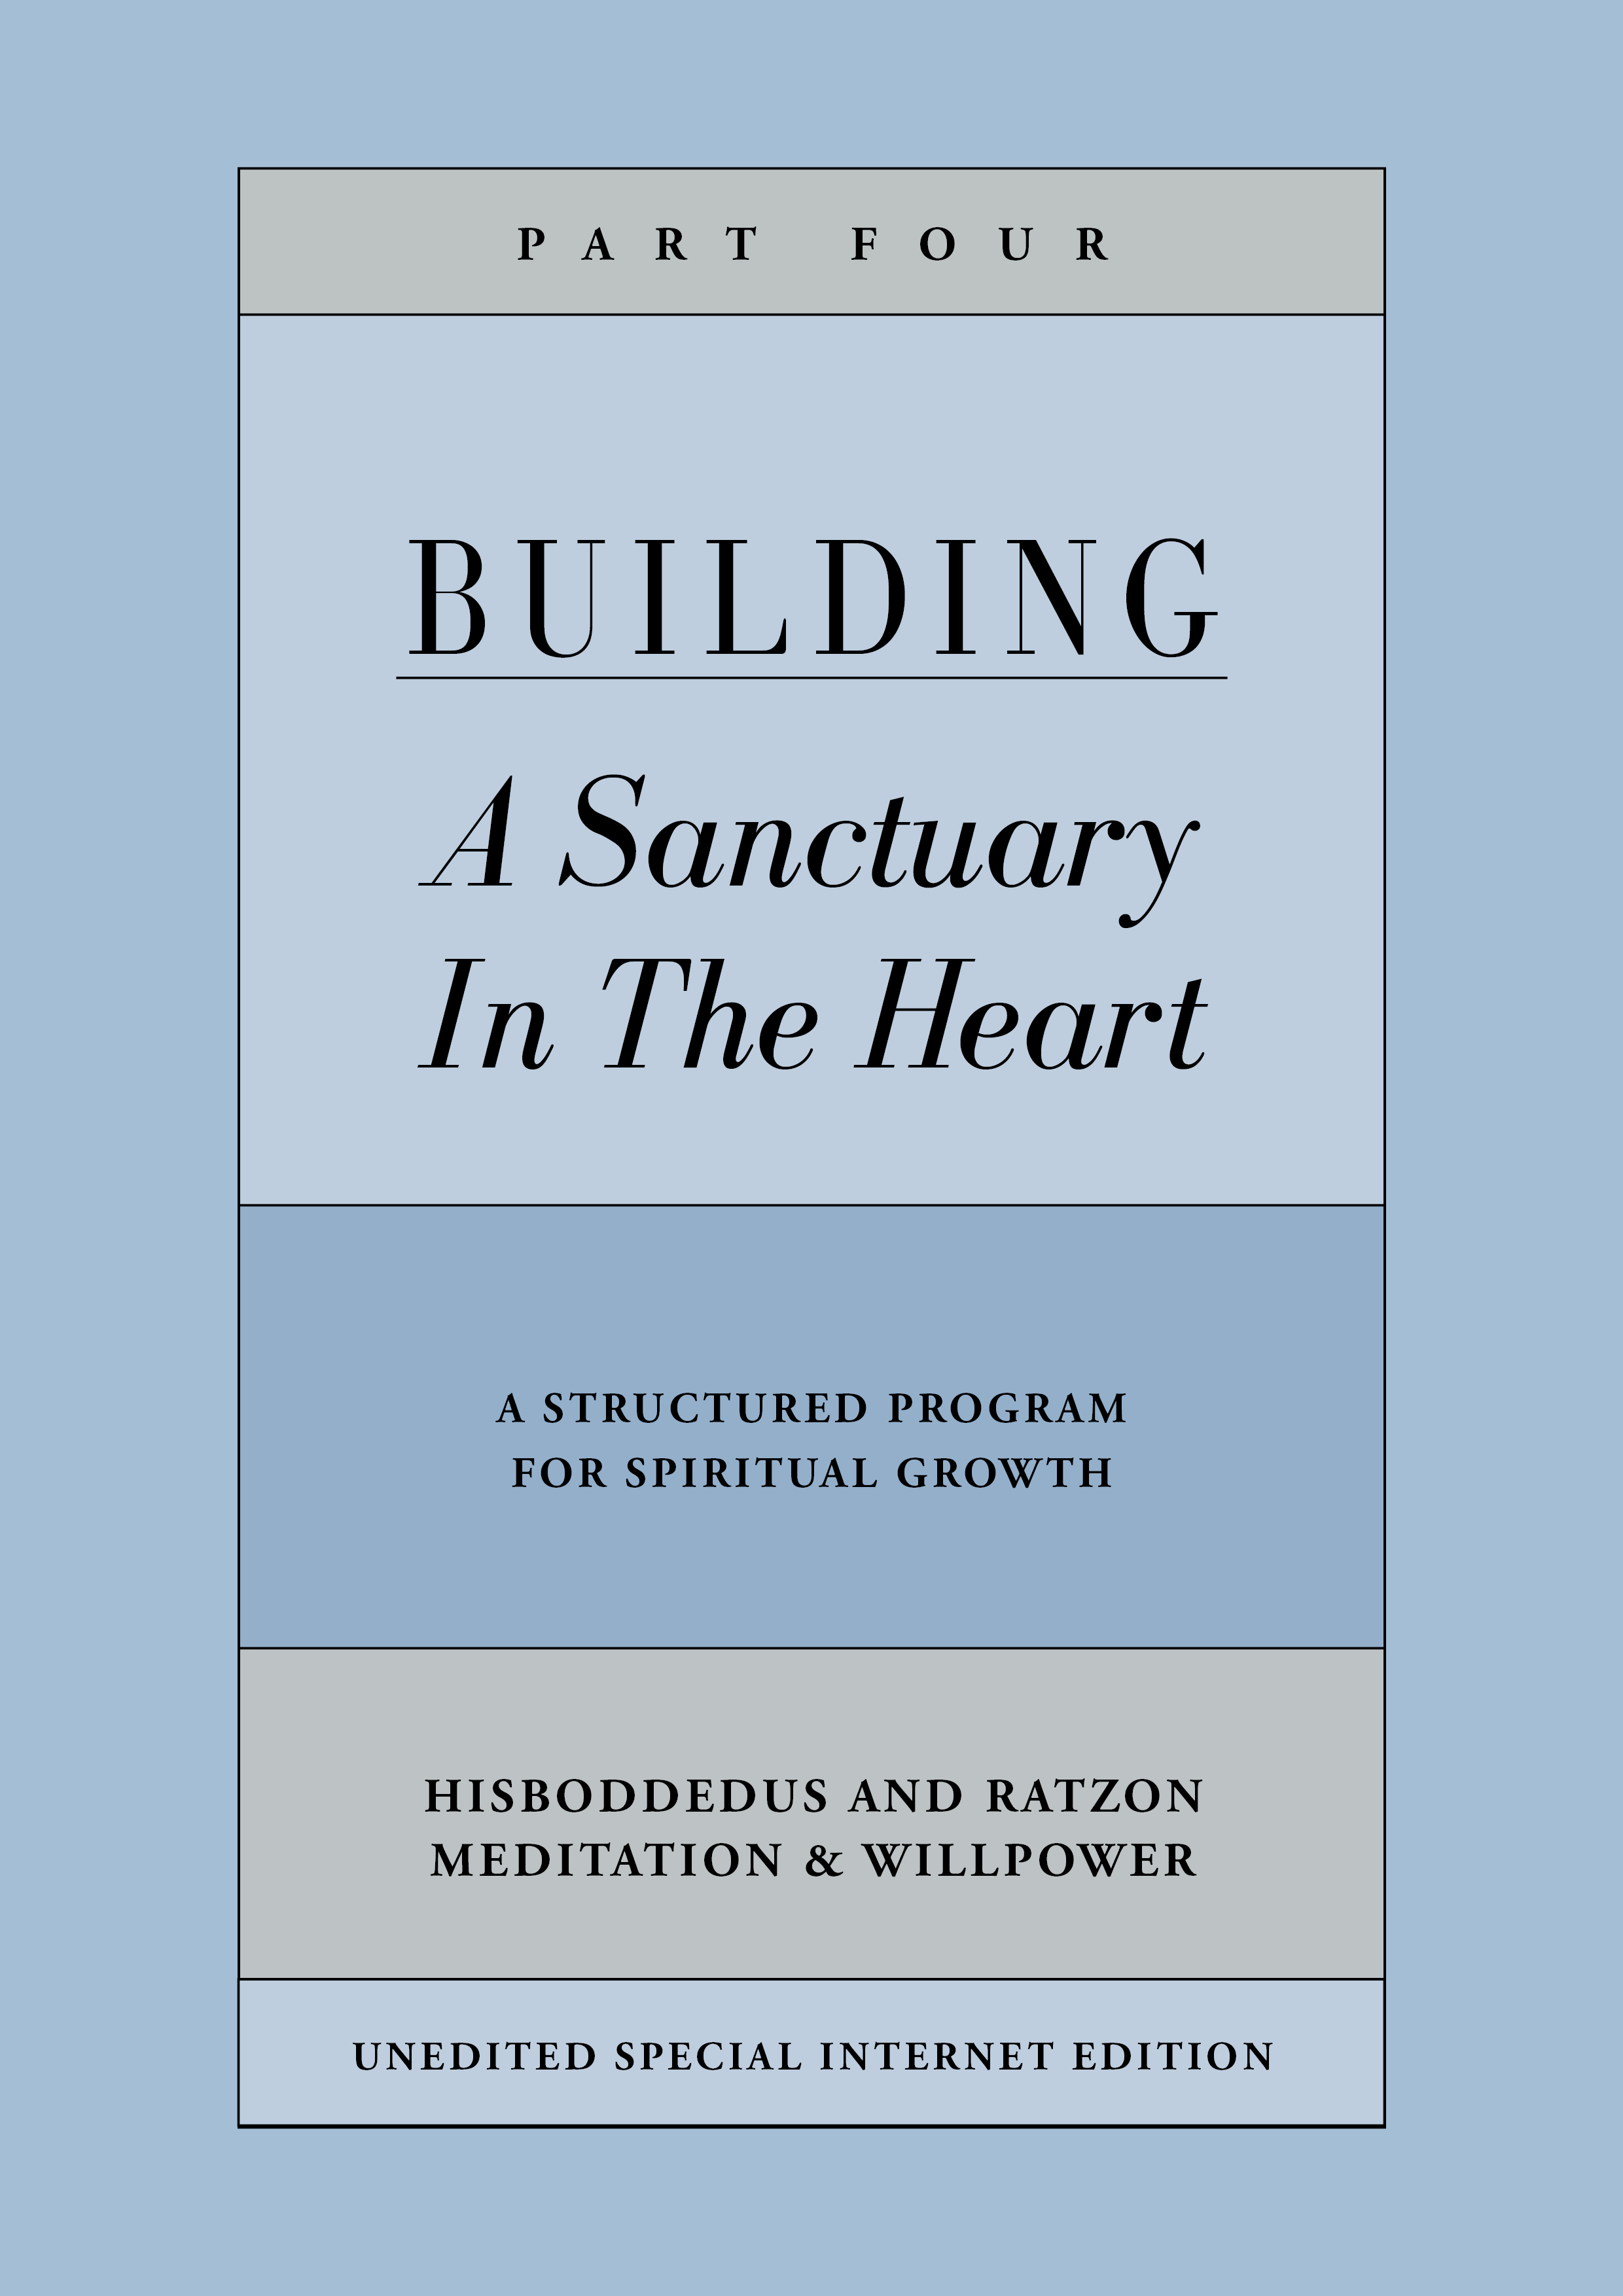 Building a Sanctuary in the Heart | Part Four